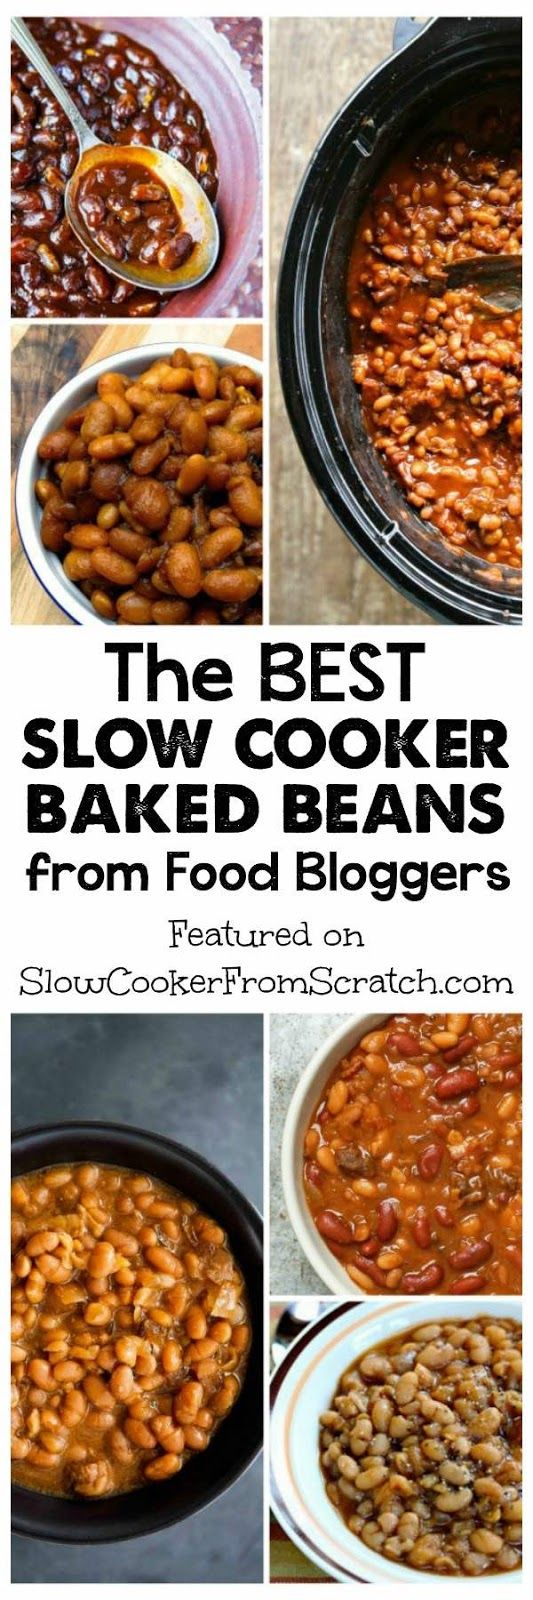 Slow cooker baked beans, Best slow cooker and Baked beans on Pinterest